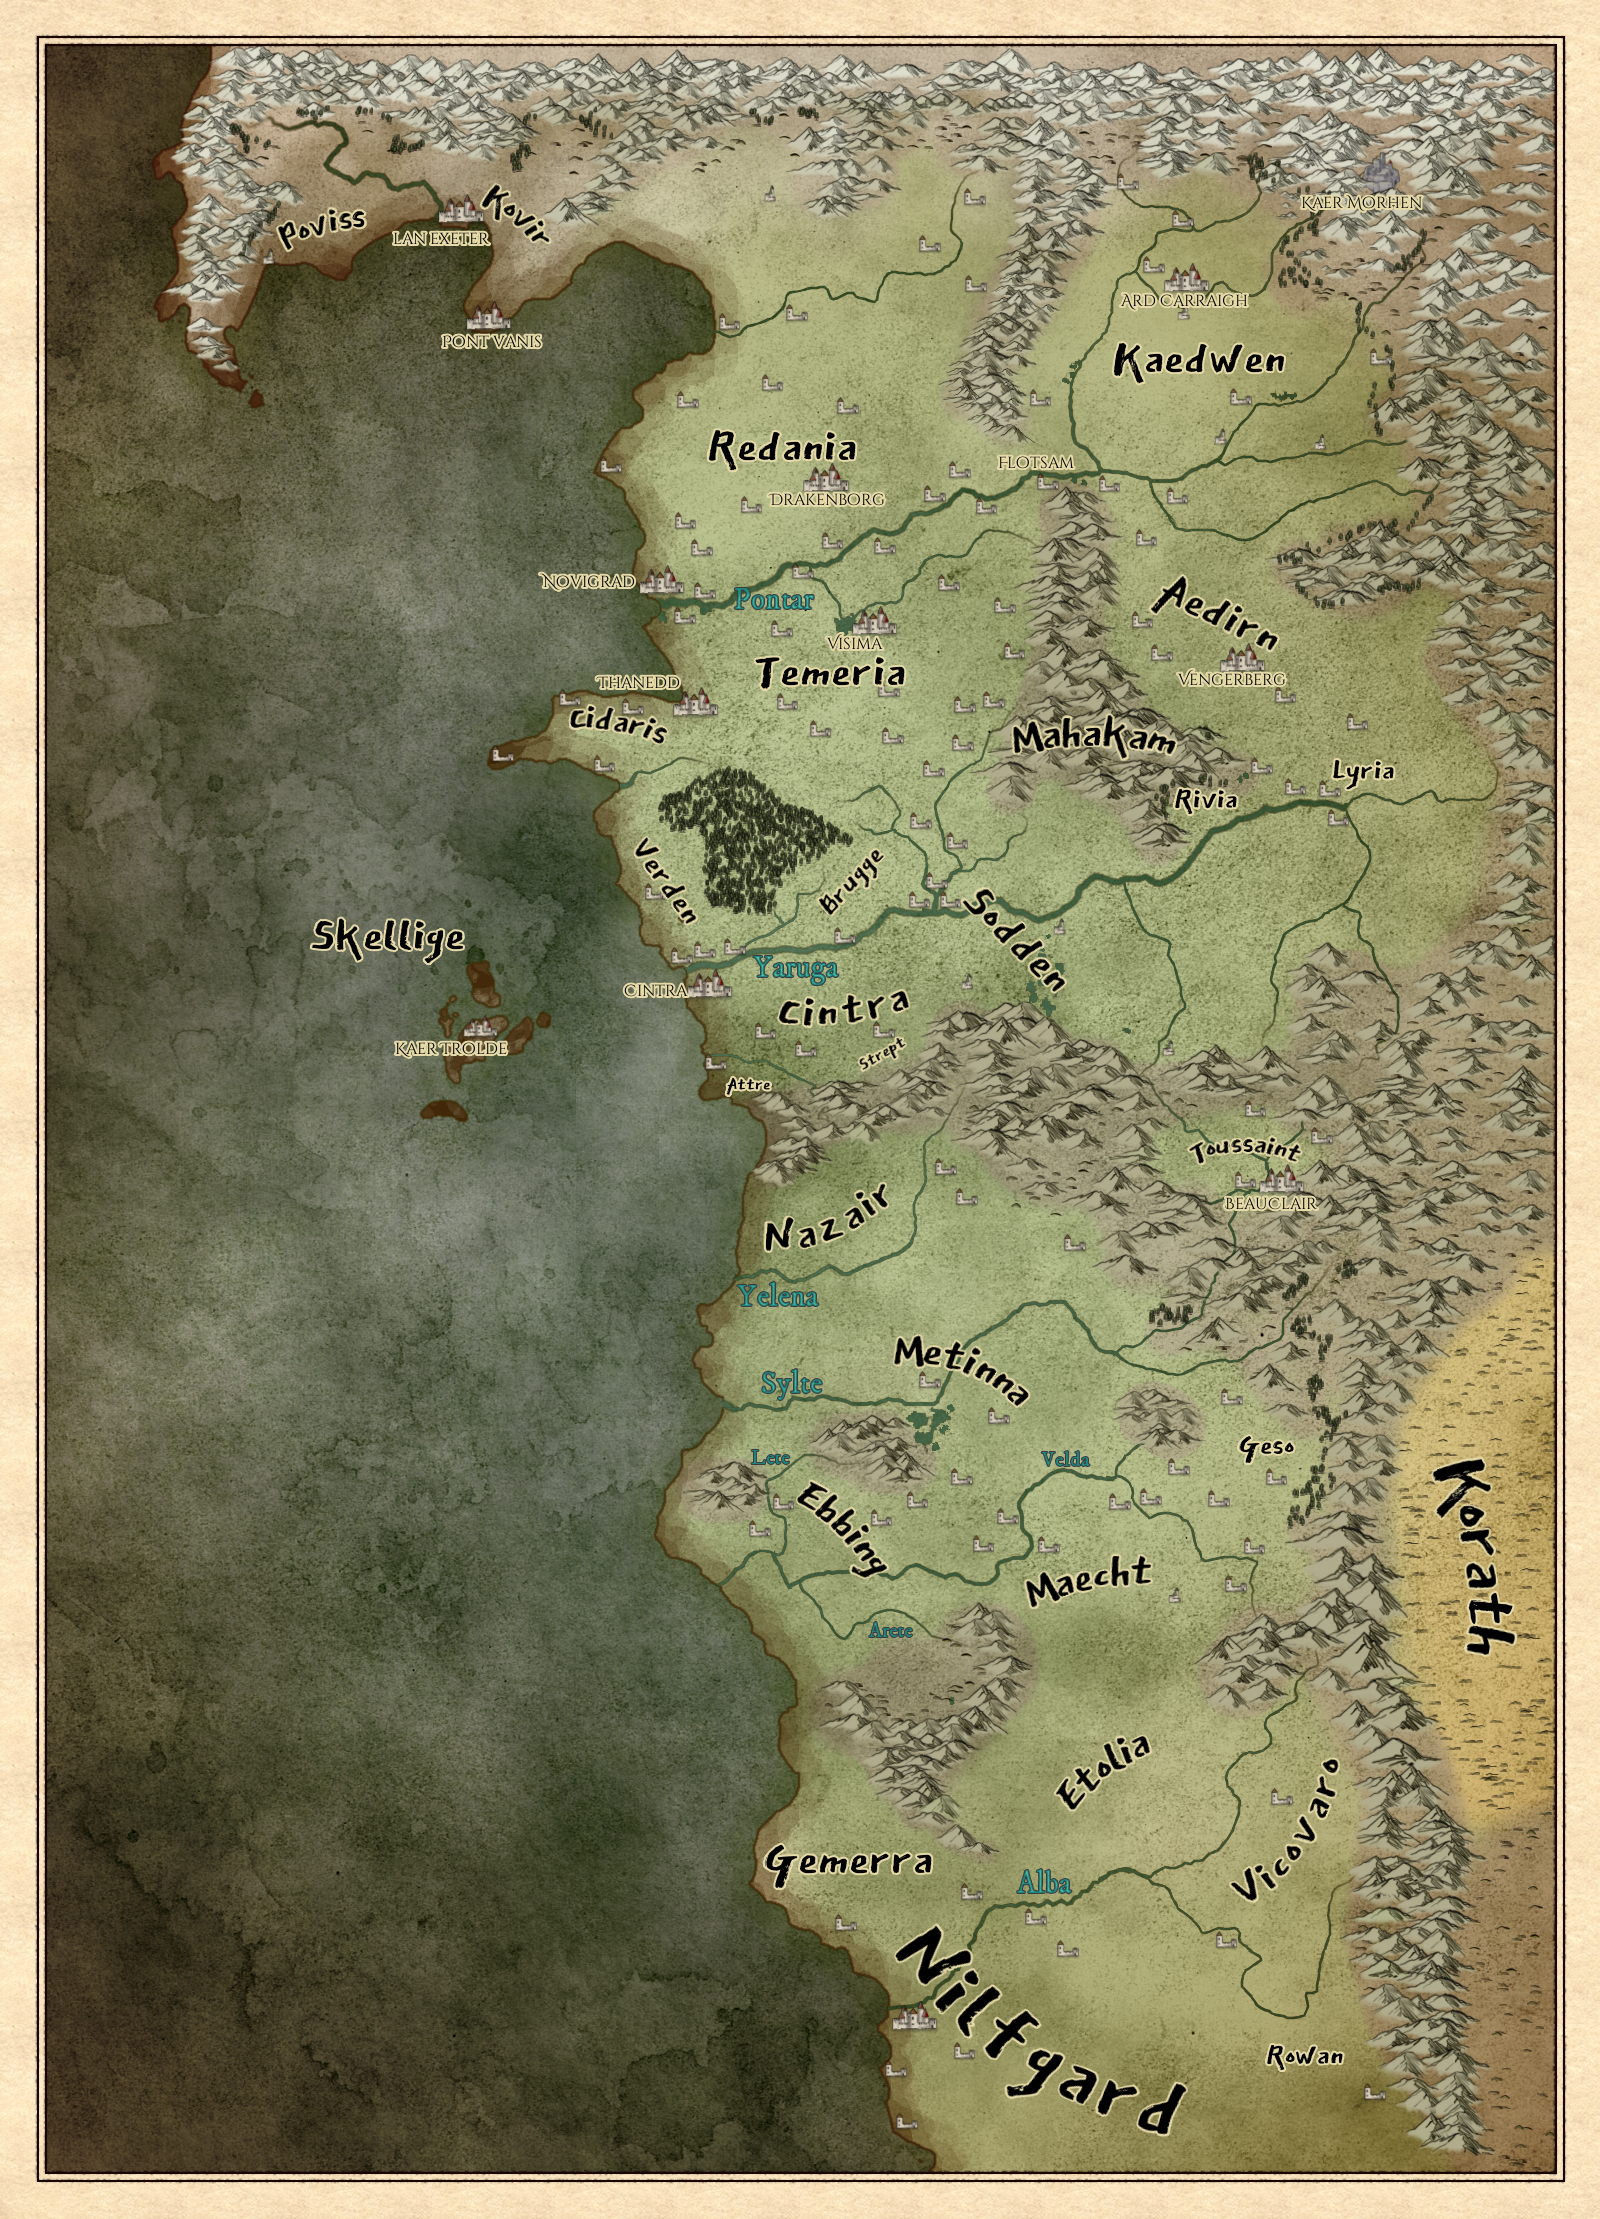 Risultato immagini per the witcher rpg map""